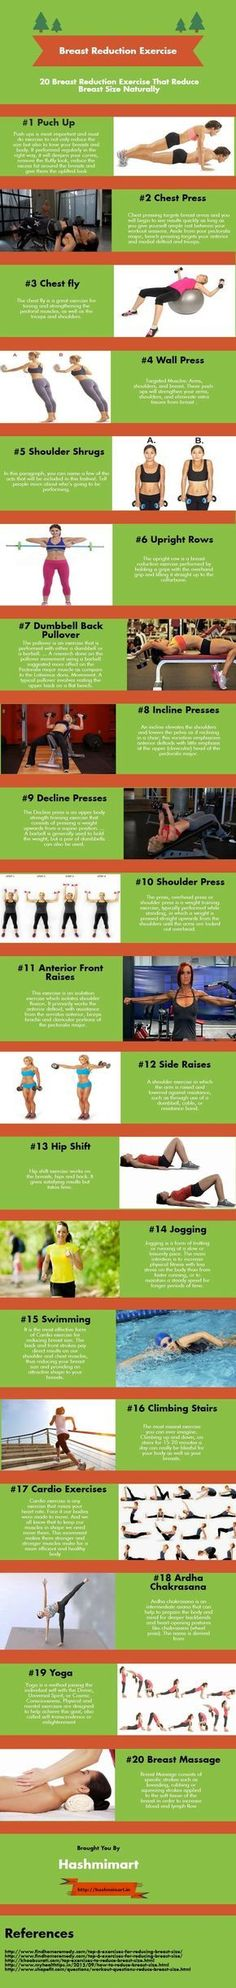 20 breast reduction exercise o reduce breast size naturally. Today, we have summarized 20 best and most effective breast reduction exercise that carves back your beauty and makes your breasts tones, shaped and uplifted. The continuous practice of a set of http://womensbusts.com/natural-ways-to-increase-breast-size